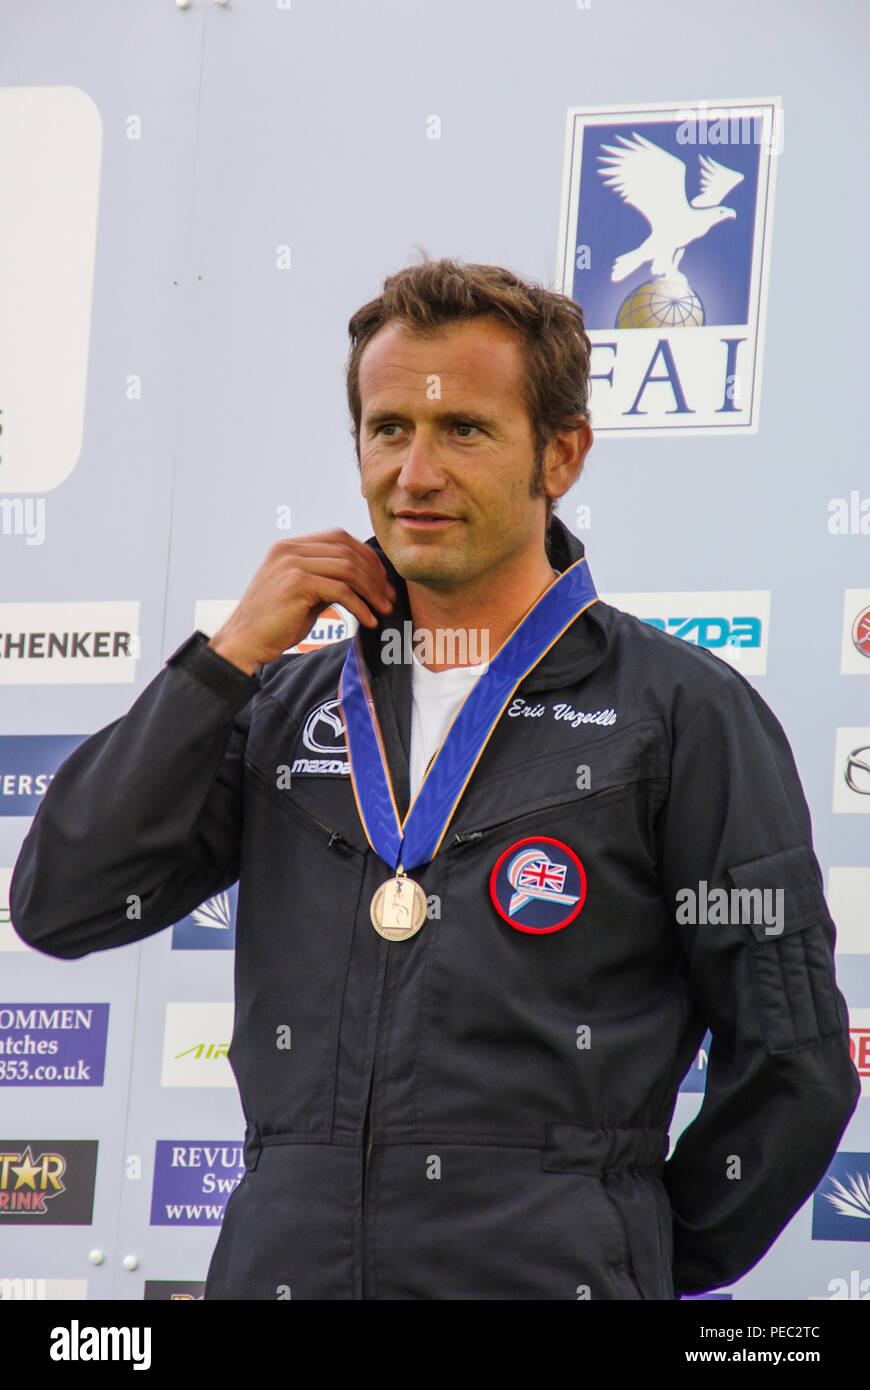 Eric Vazeille, British pilot, with bronze medal on the podium having finished third in the freestyle competition at World Aerobatic Championships - Stock Image